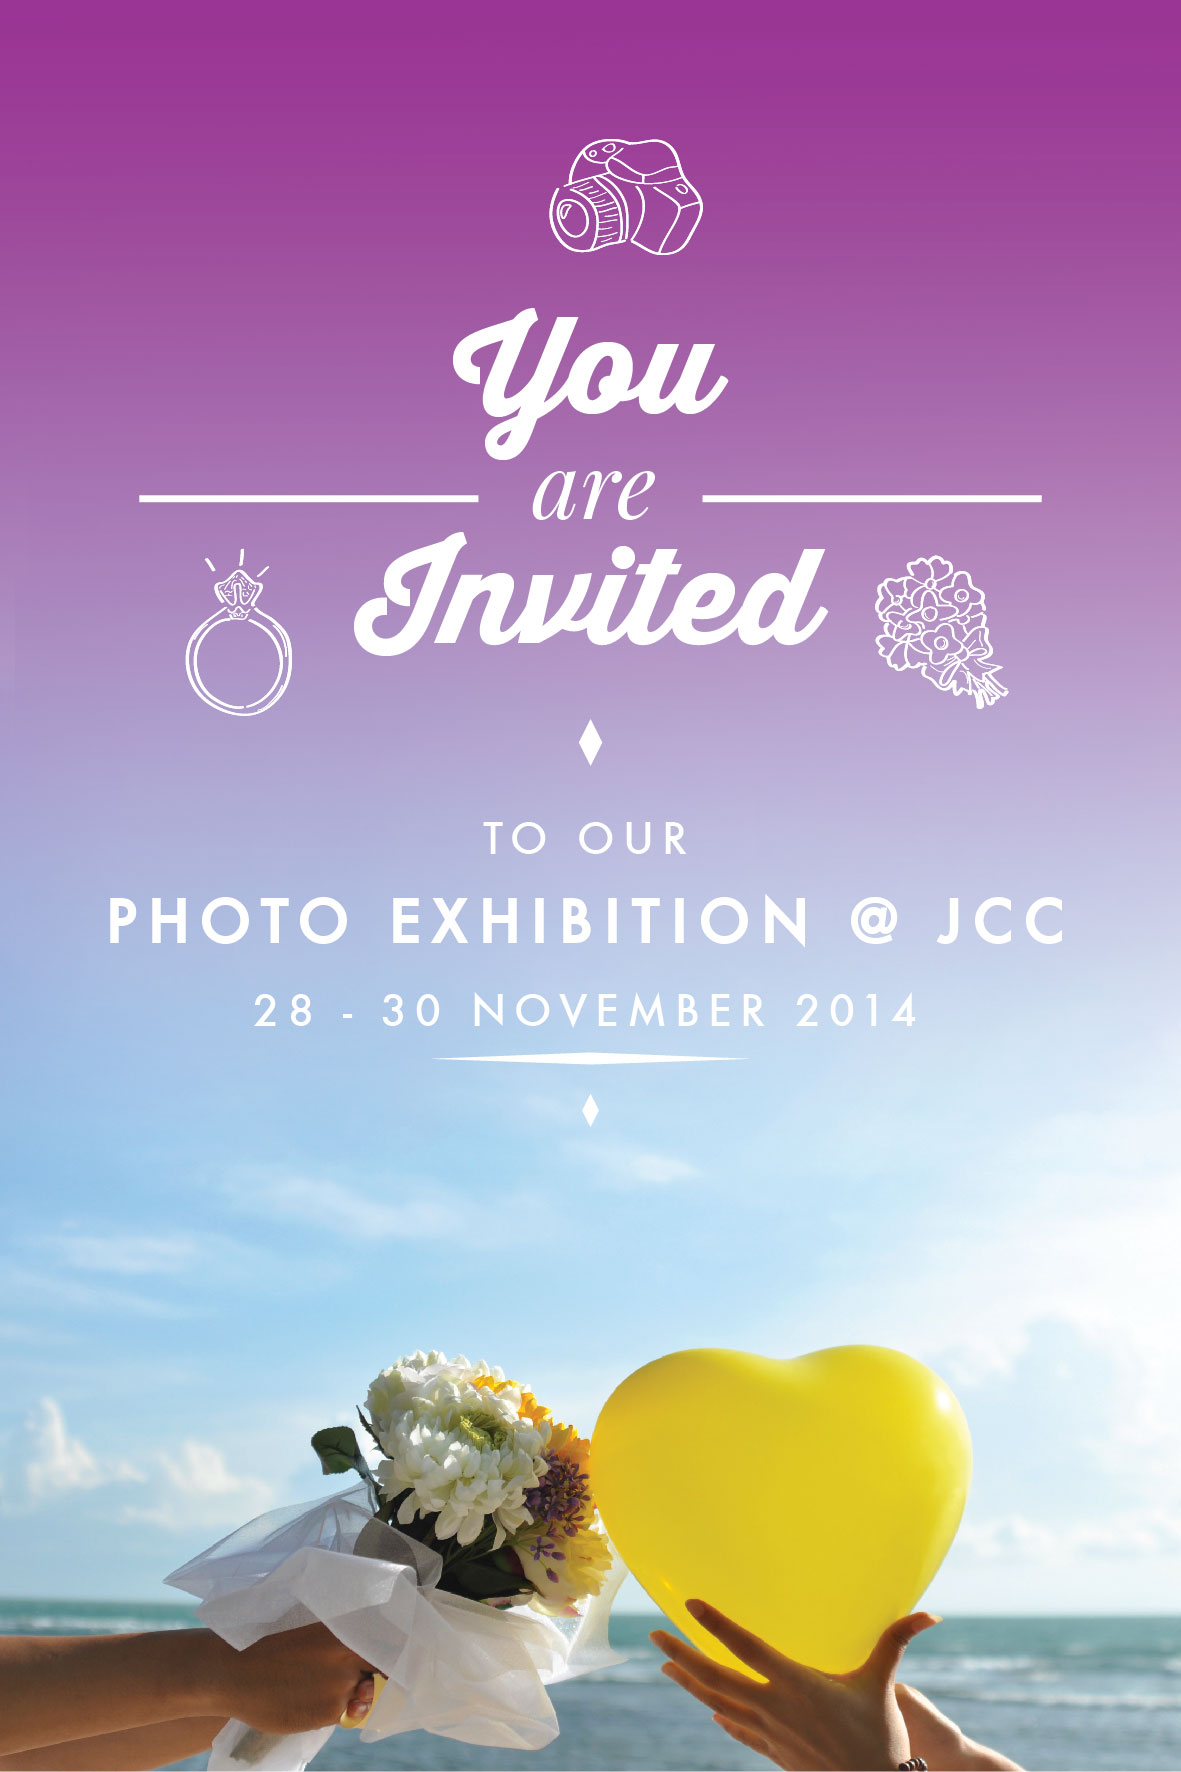 You're invited to our Photo Exhibition @ JCC :)